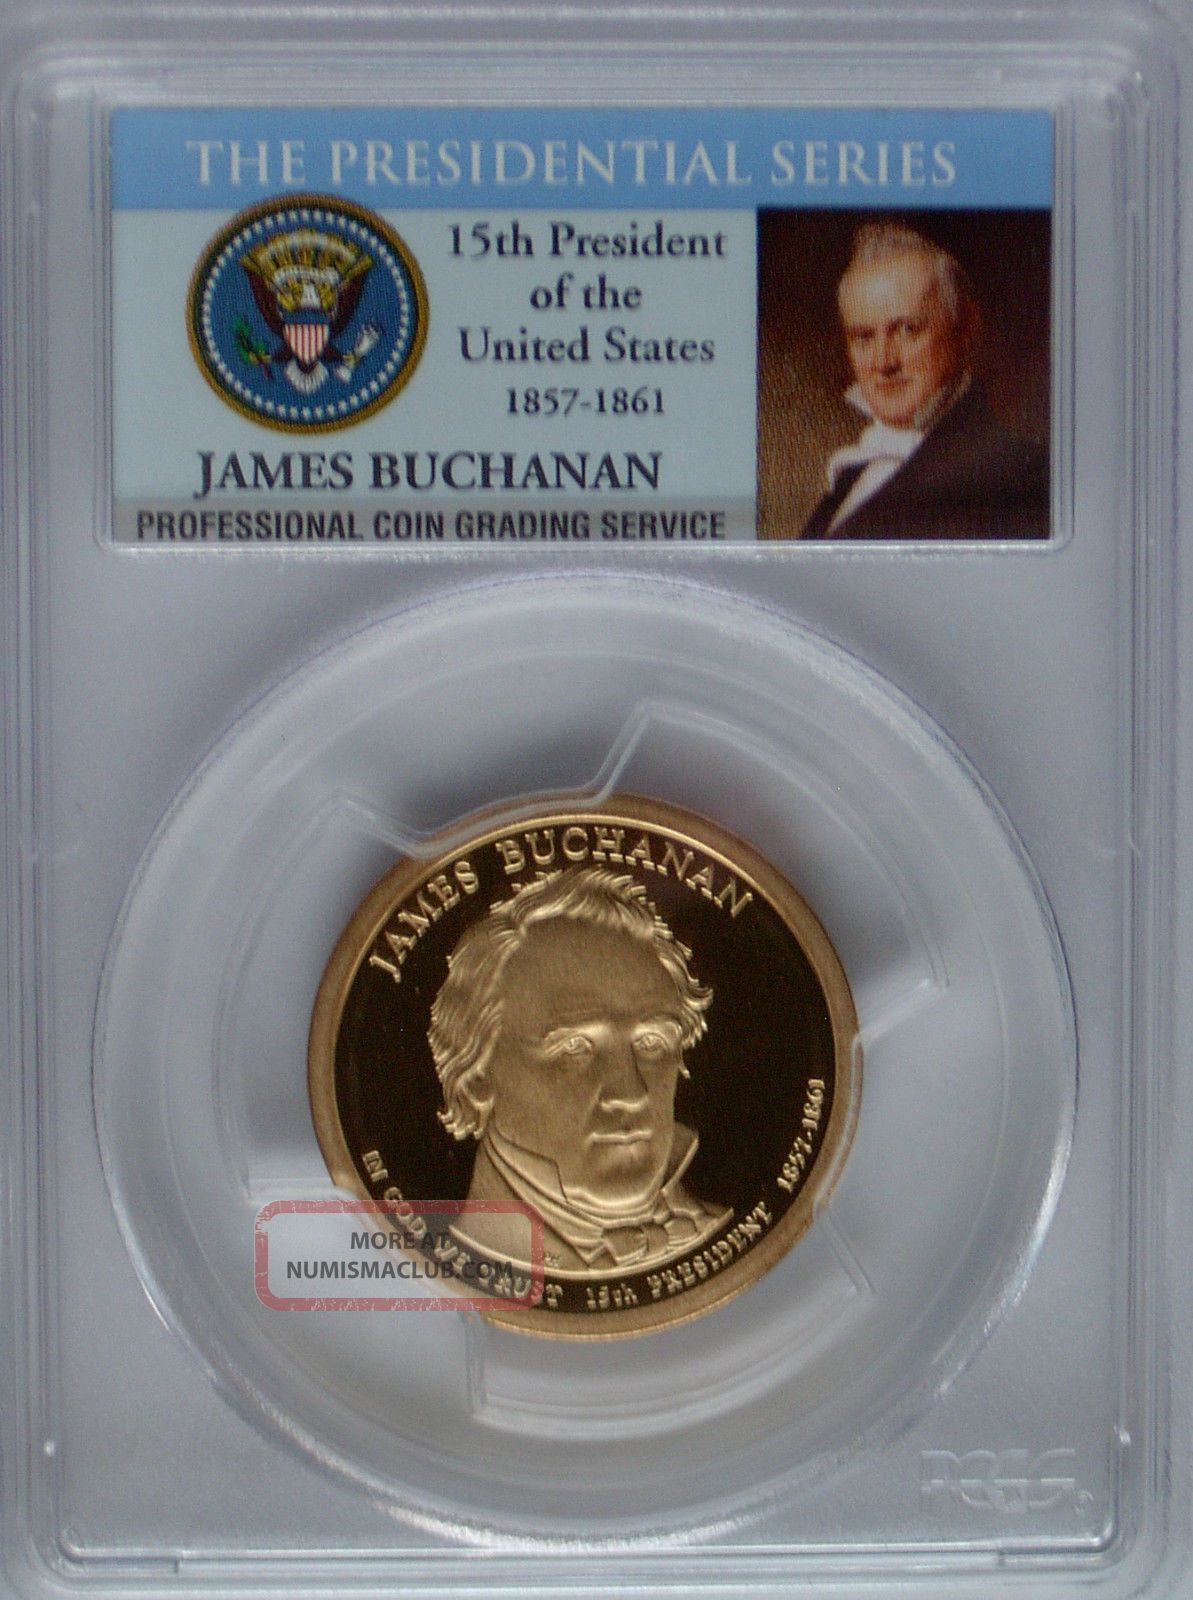 Pcgs 2010 S Proof James Buchanan 15th Presidential Dollar Pr69 Price Guide$16 Pf Dollars photo